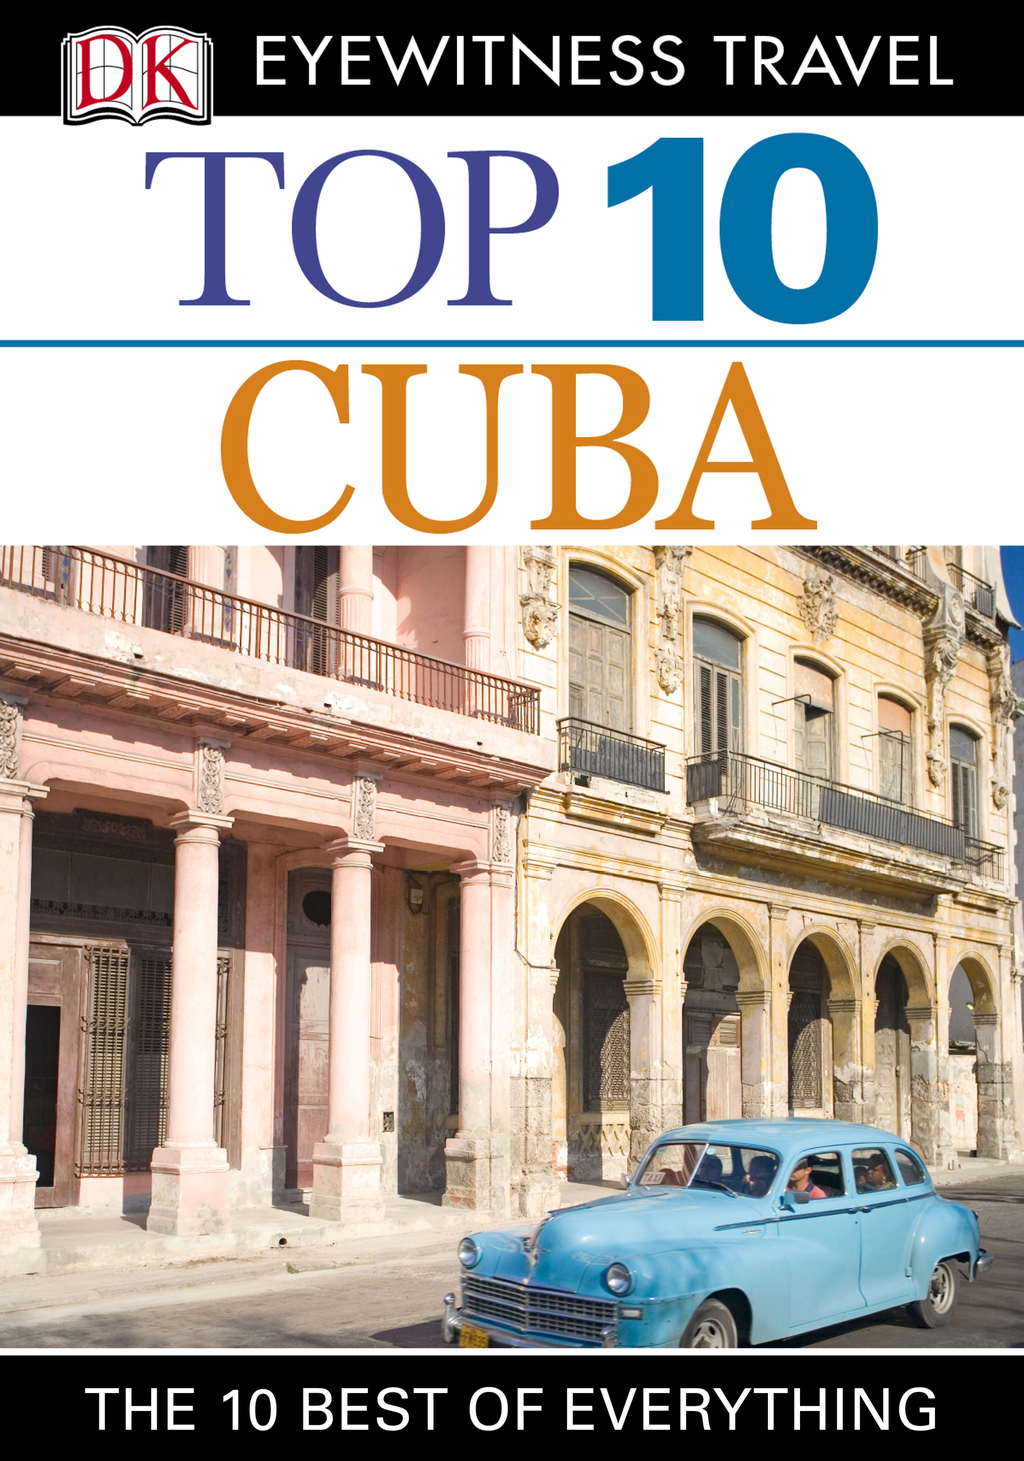 Top 10 Cuba By: Christopher Baker